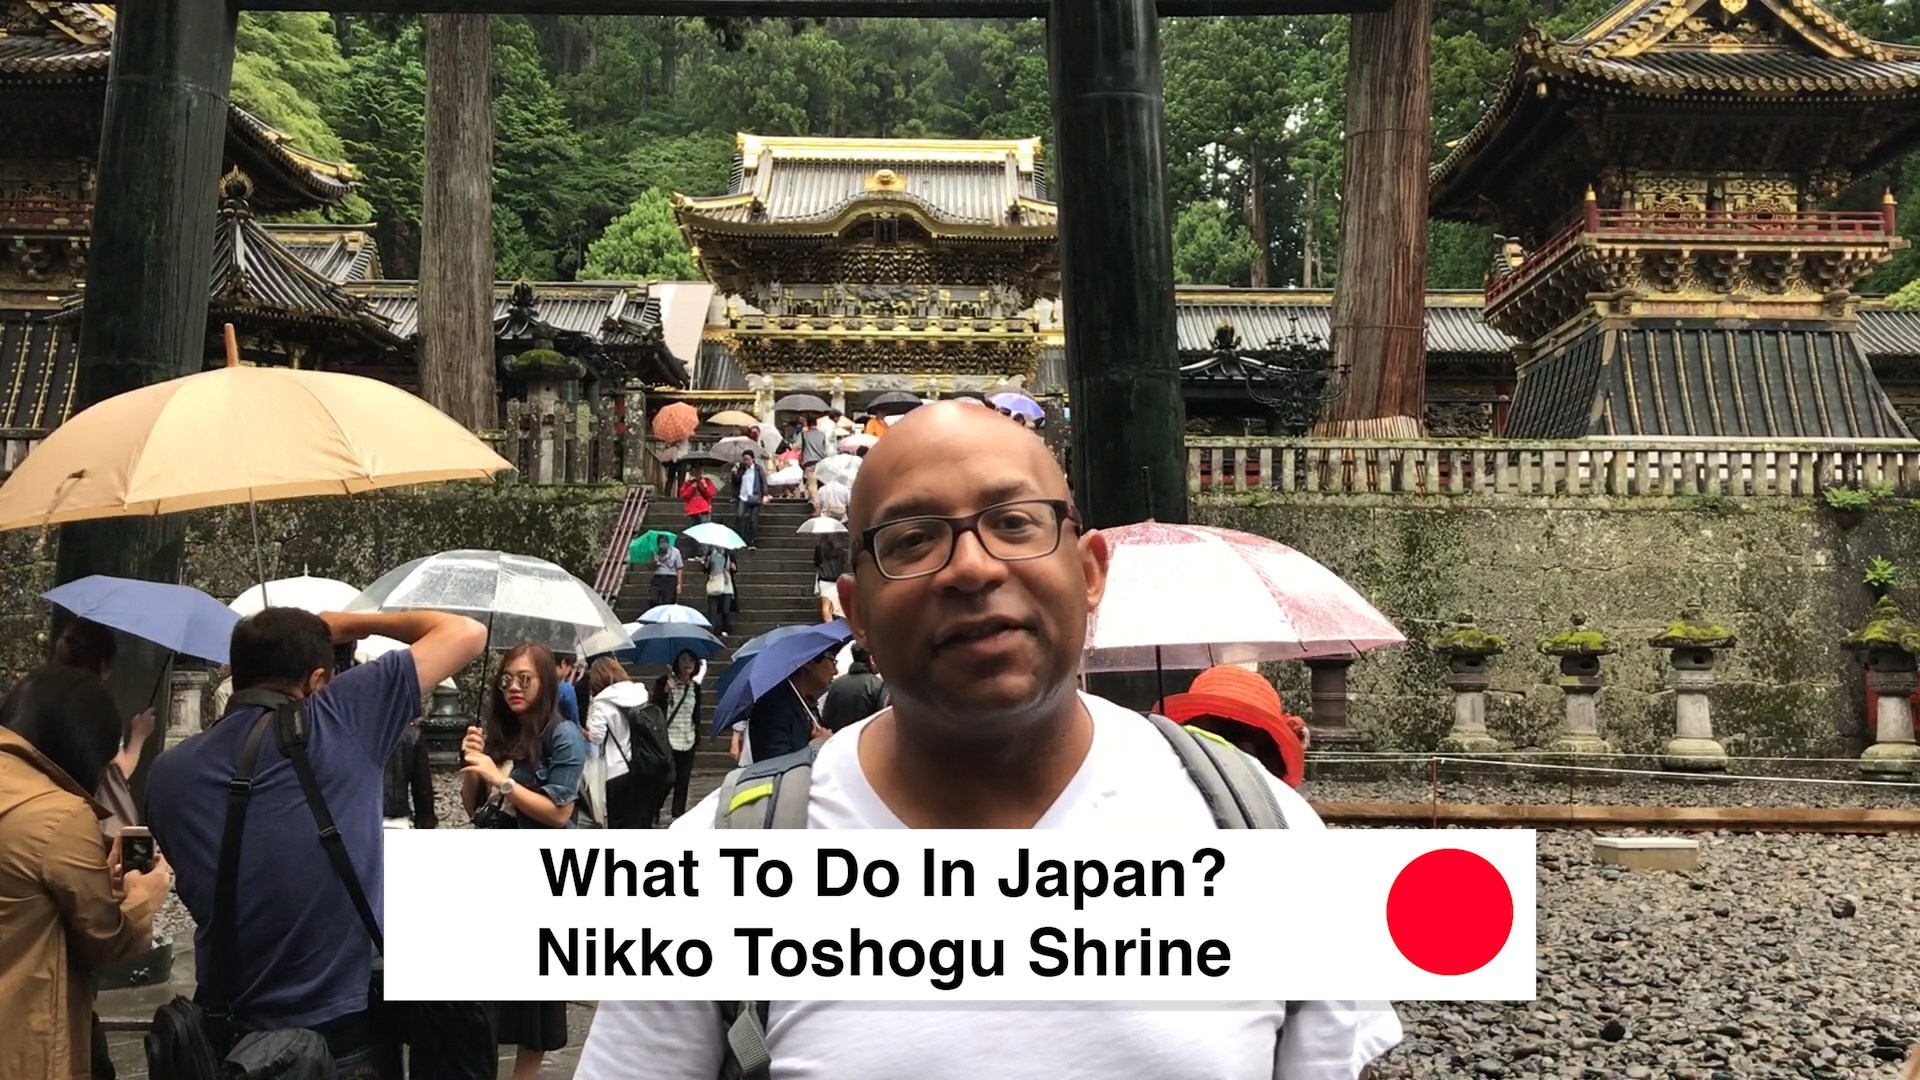 What To Do In Japan - Nikko Toshogu Shrine Japan Review Blog Guide List View Video 2017 ⛩ 🏯 🌸